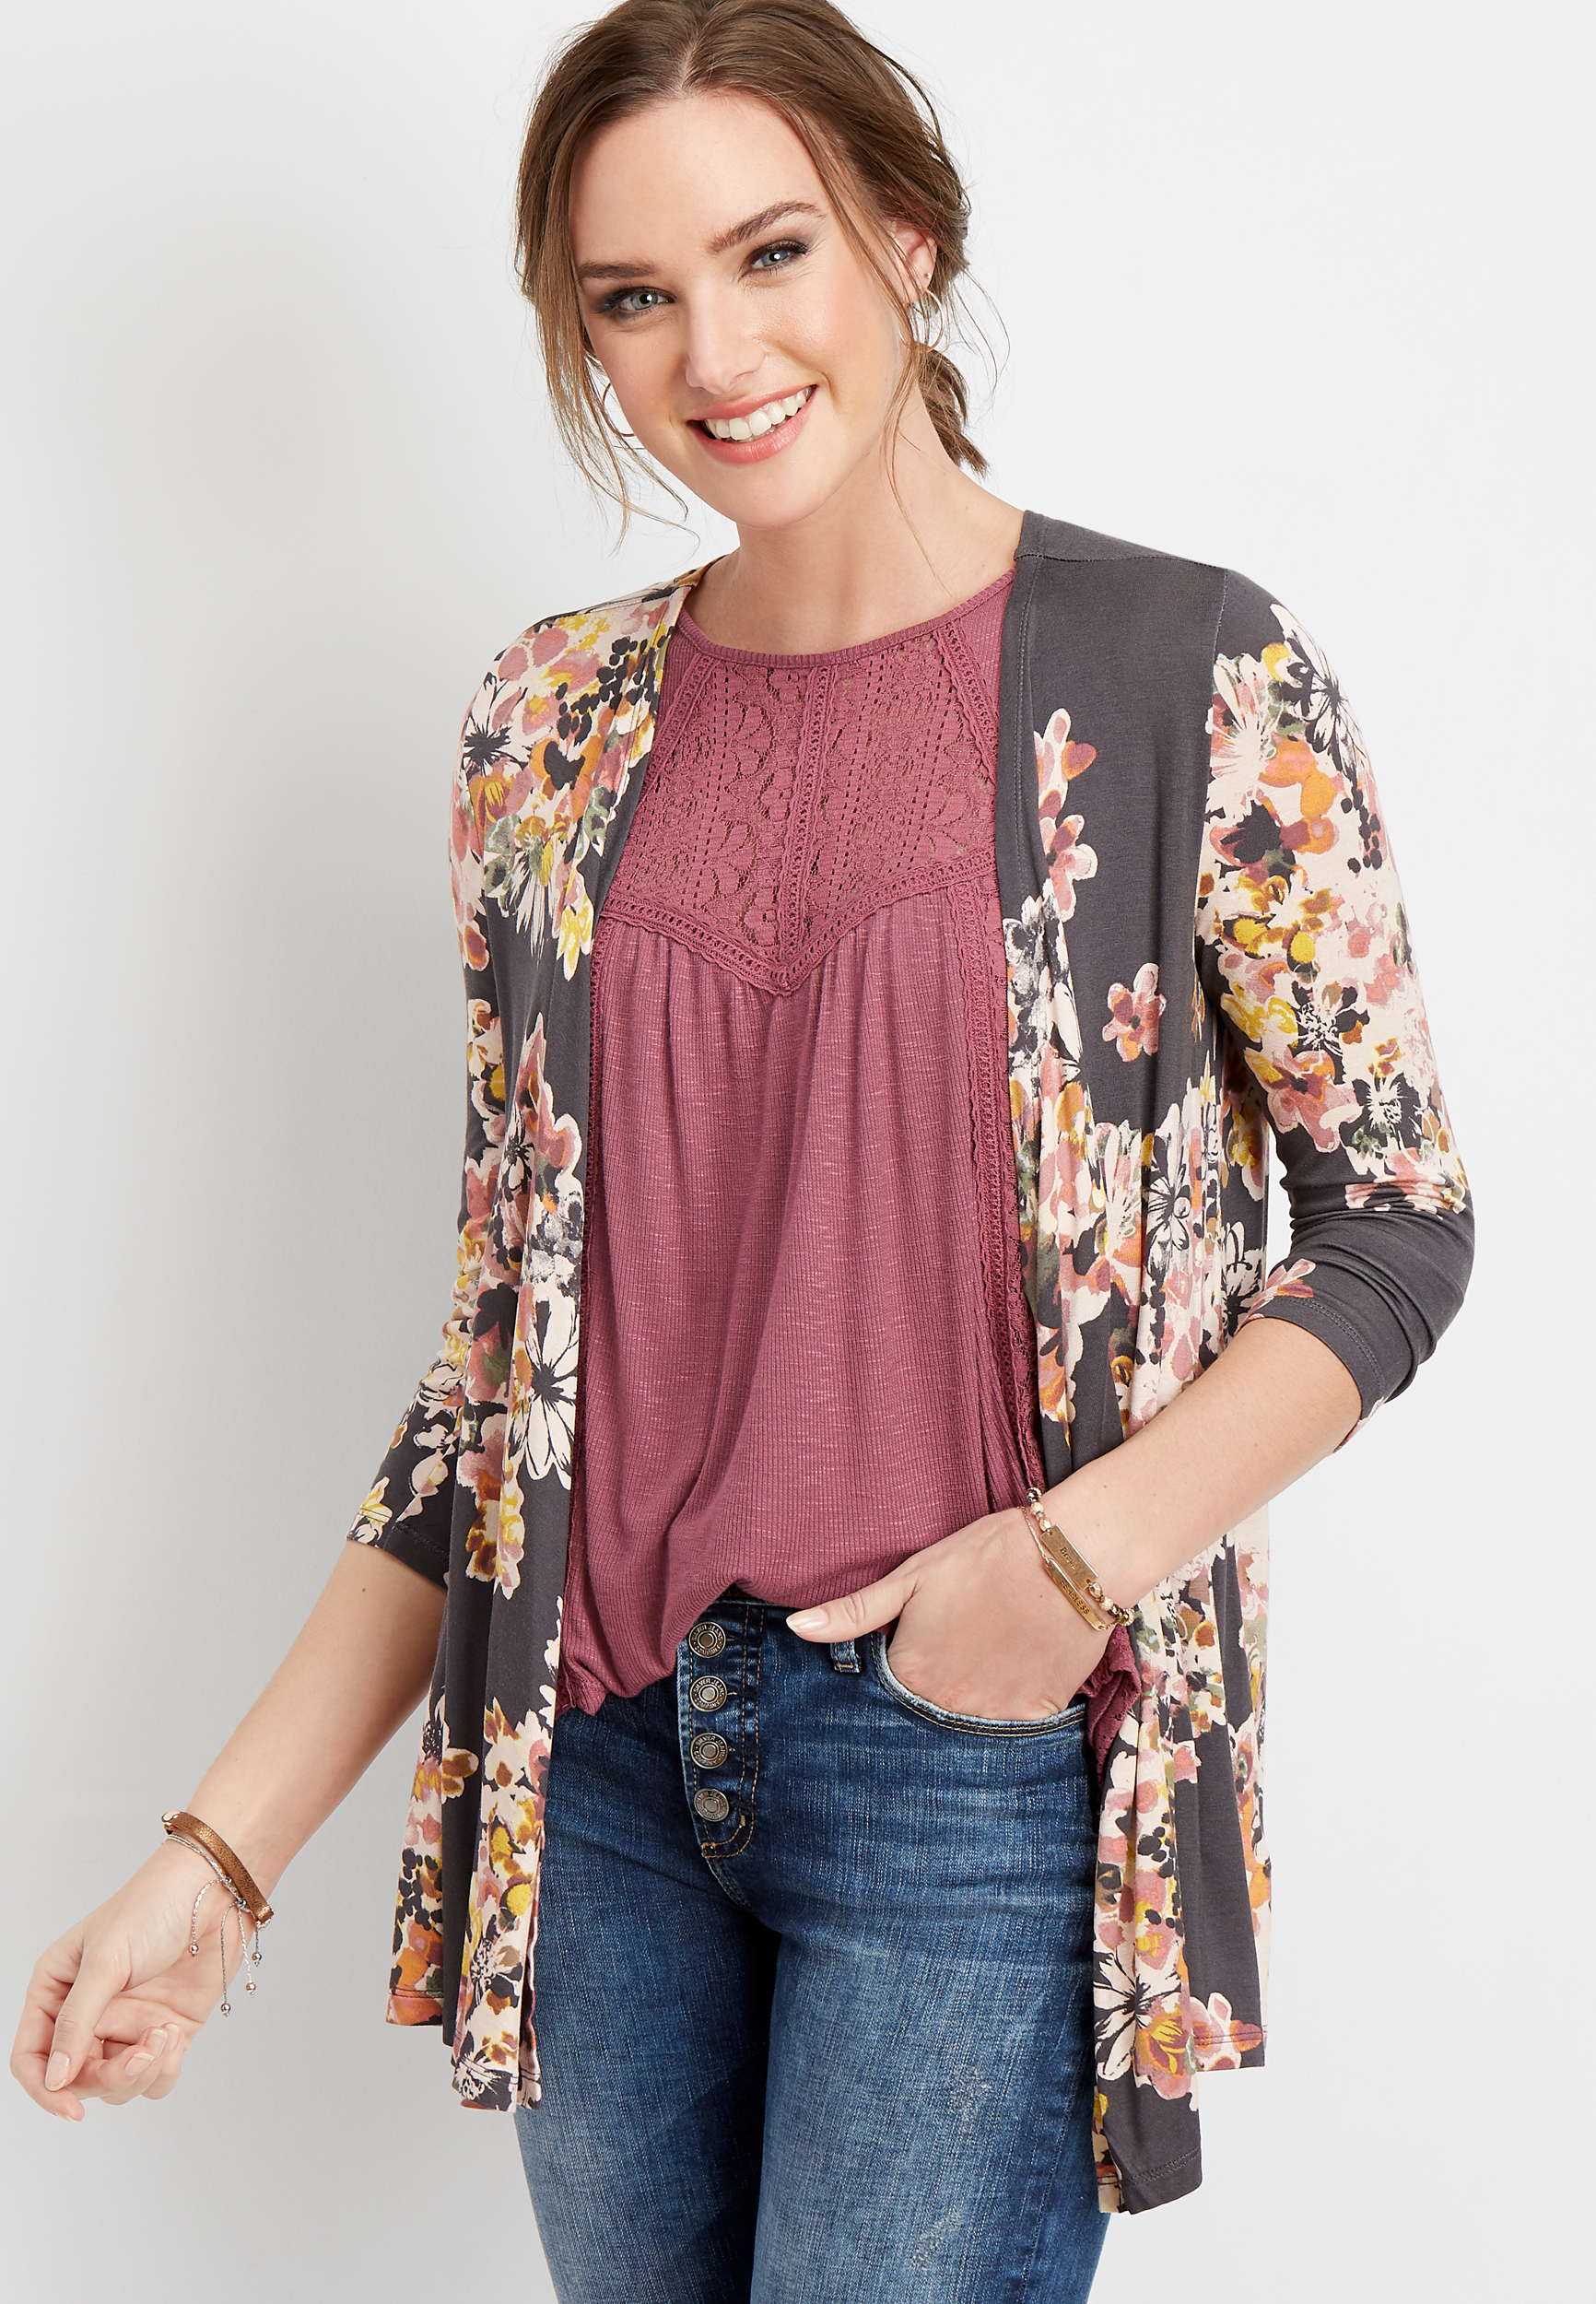 Crochet Back Floral Cardigan by Maurices